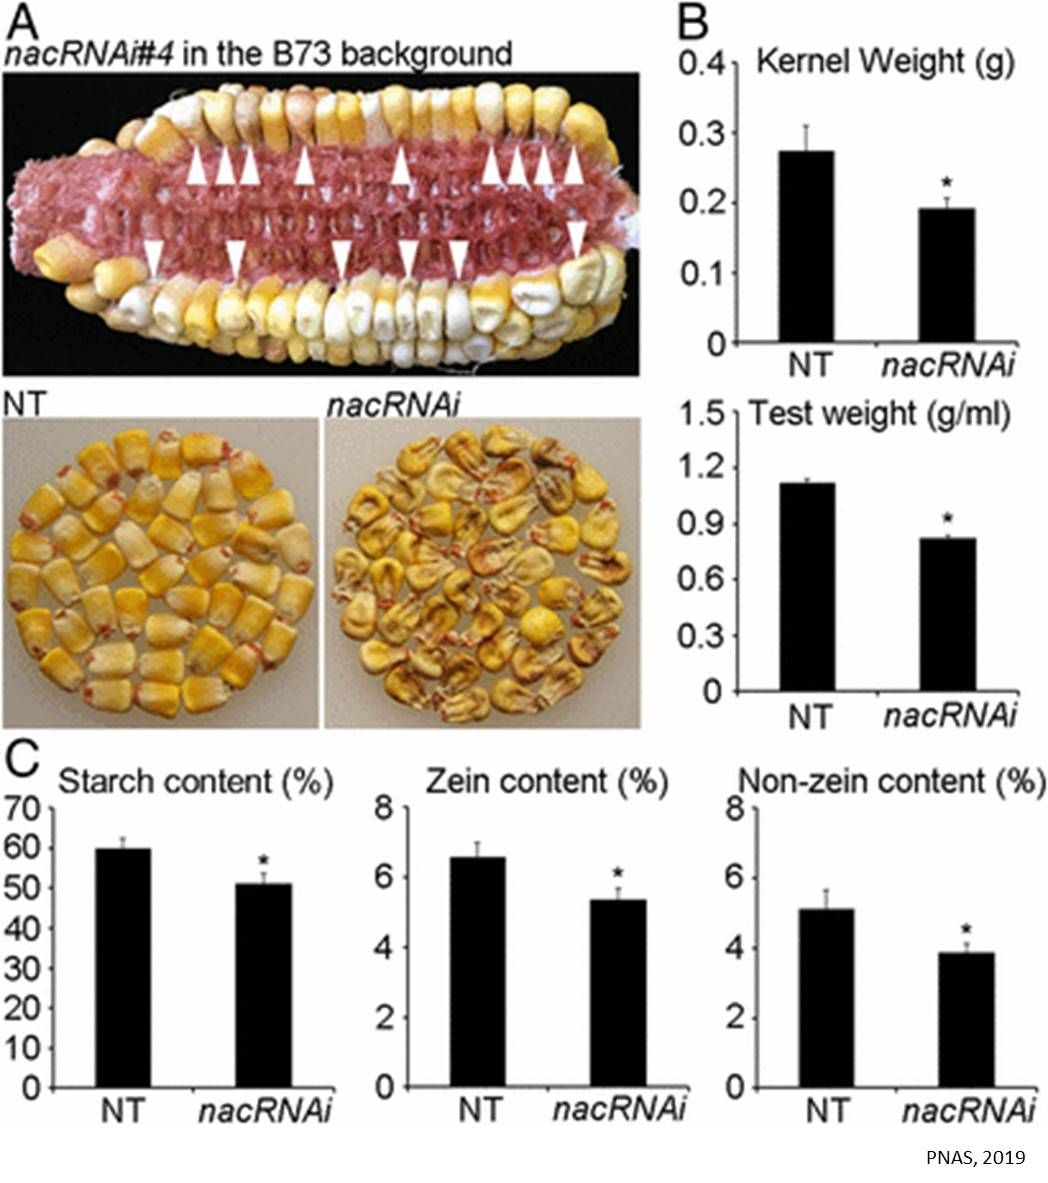 Transcription factors controlling the corn quality identified